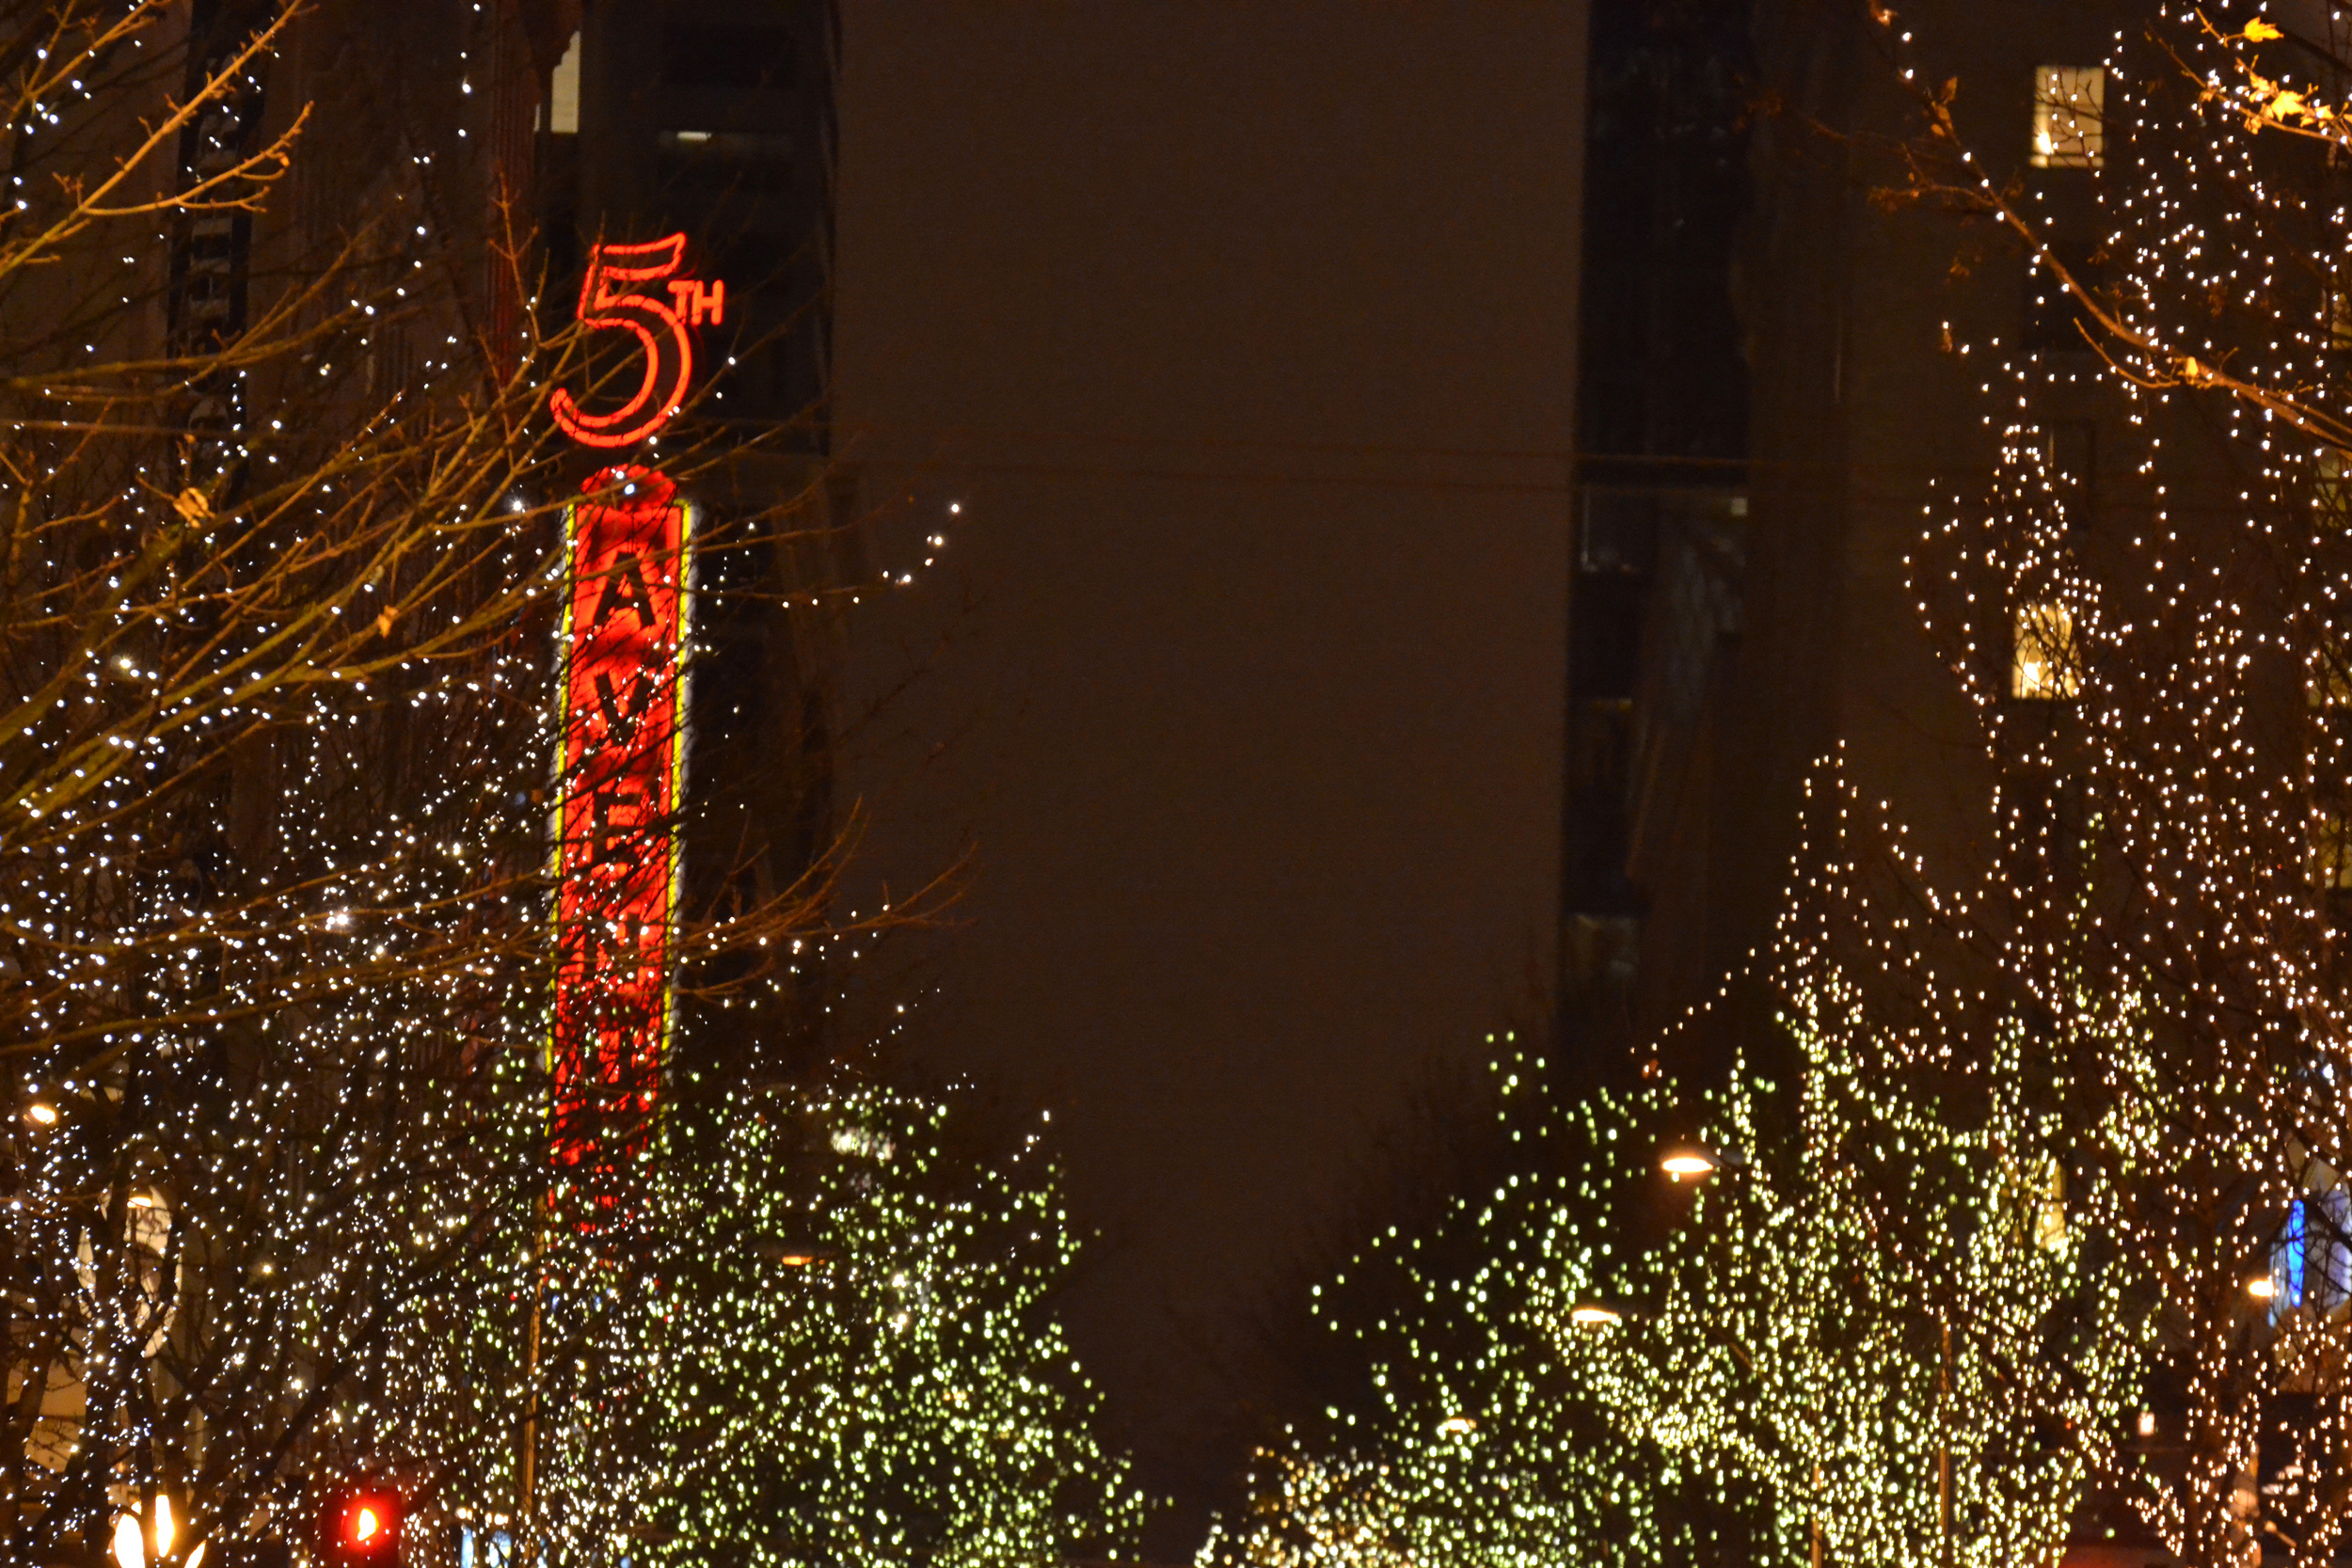 0236 Fifth Avenue Theater 29 NOV 2013.jpg